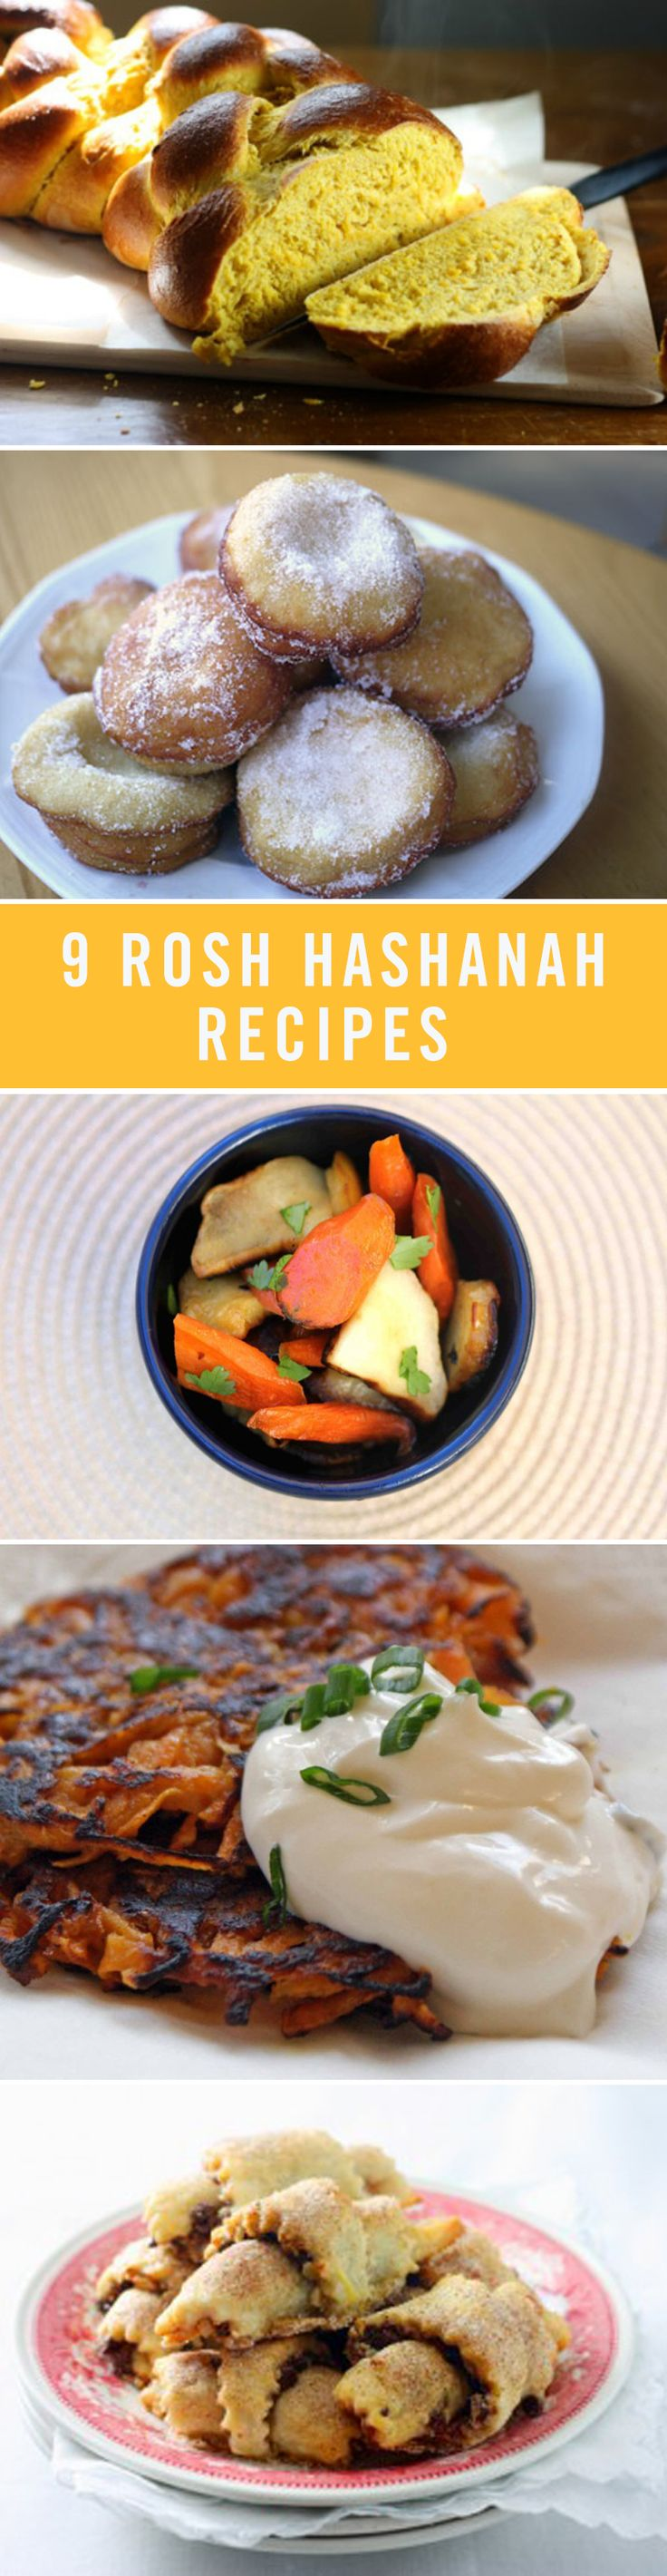 Kick off the holiday season with these cozy recipes for Rosh Hashanah. Add delightful treats like honey cake, pumpkin challah, and sweet potato latkes to your holiday menu this year!